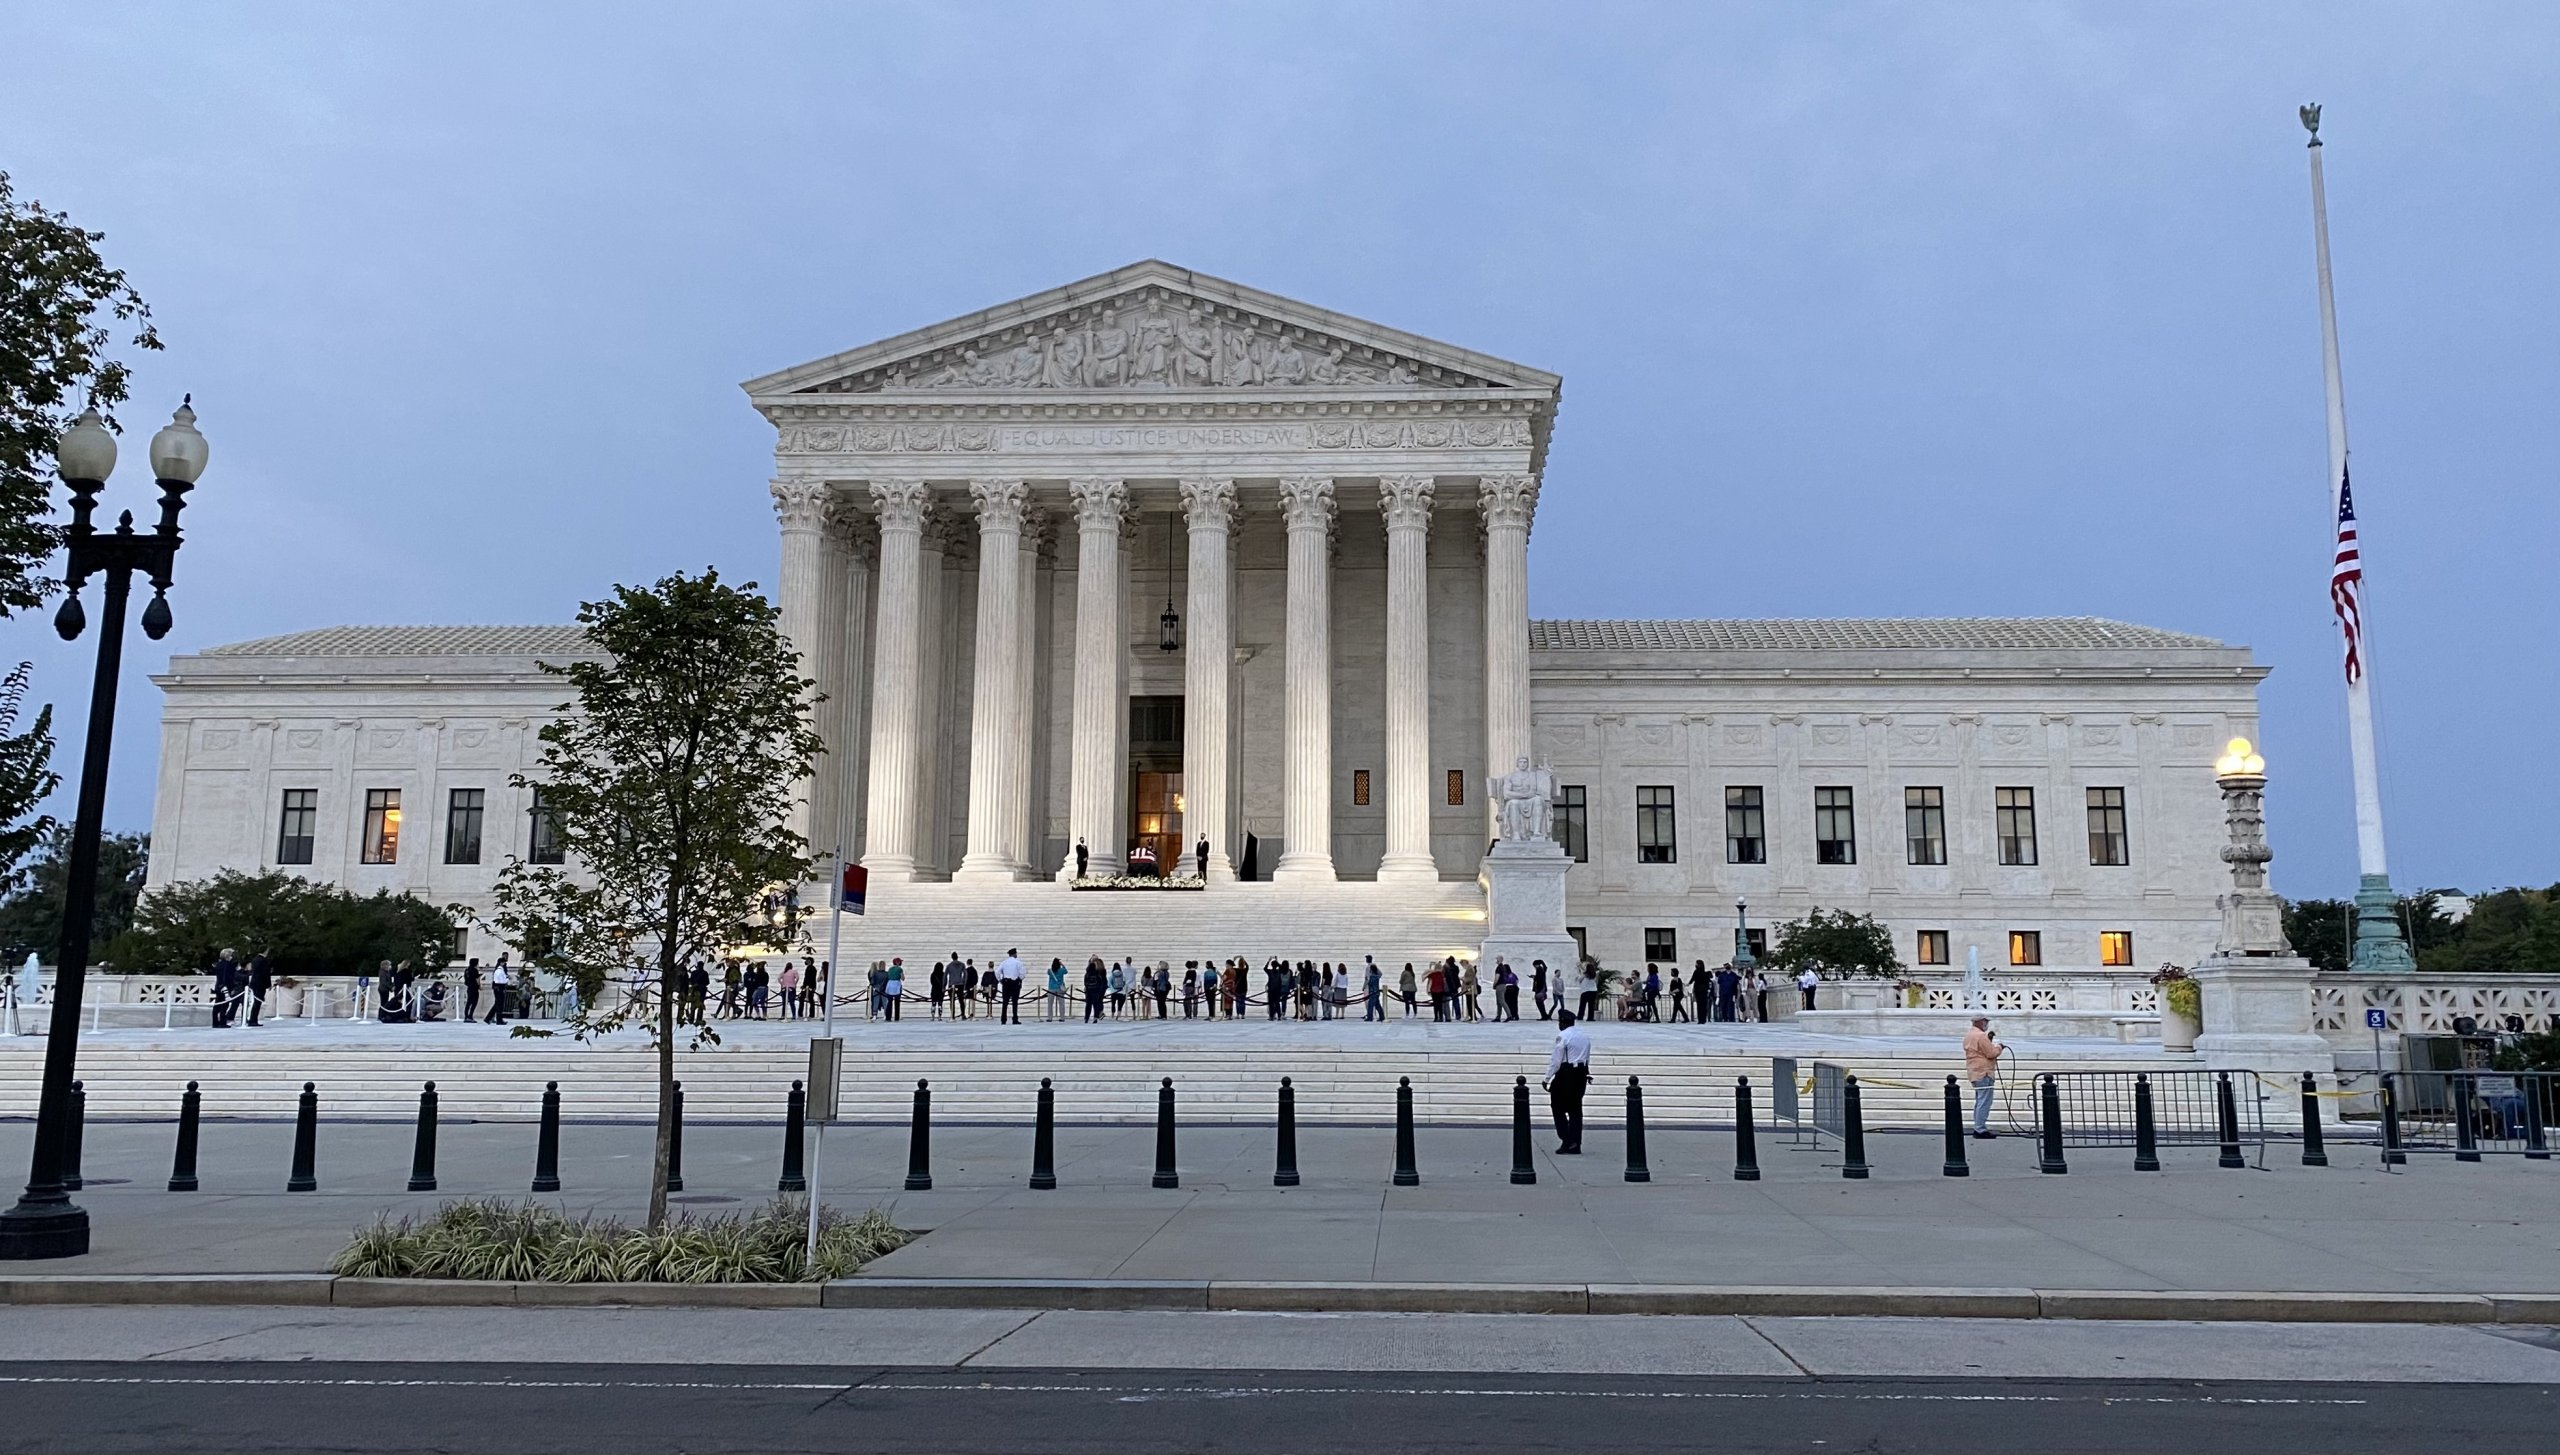 Should the Supreme Court have termlimits?